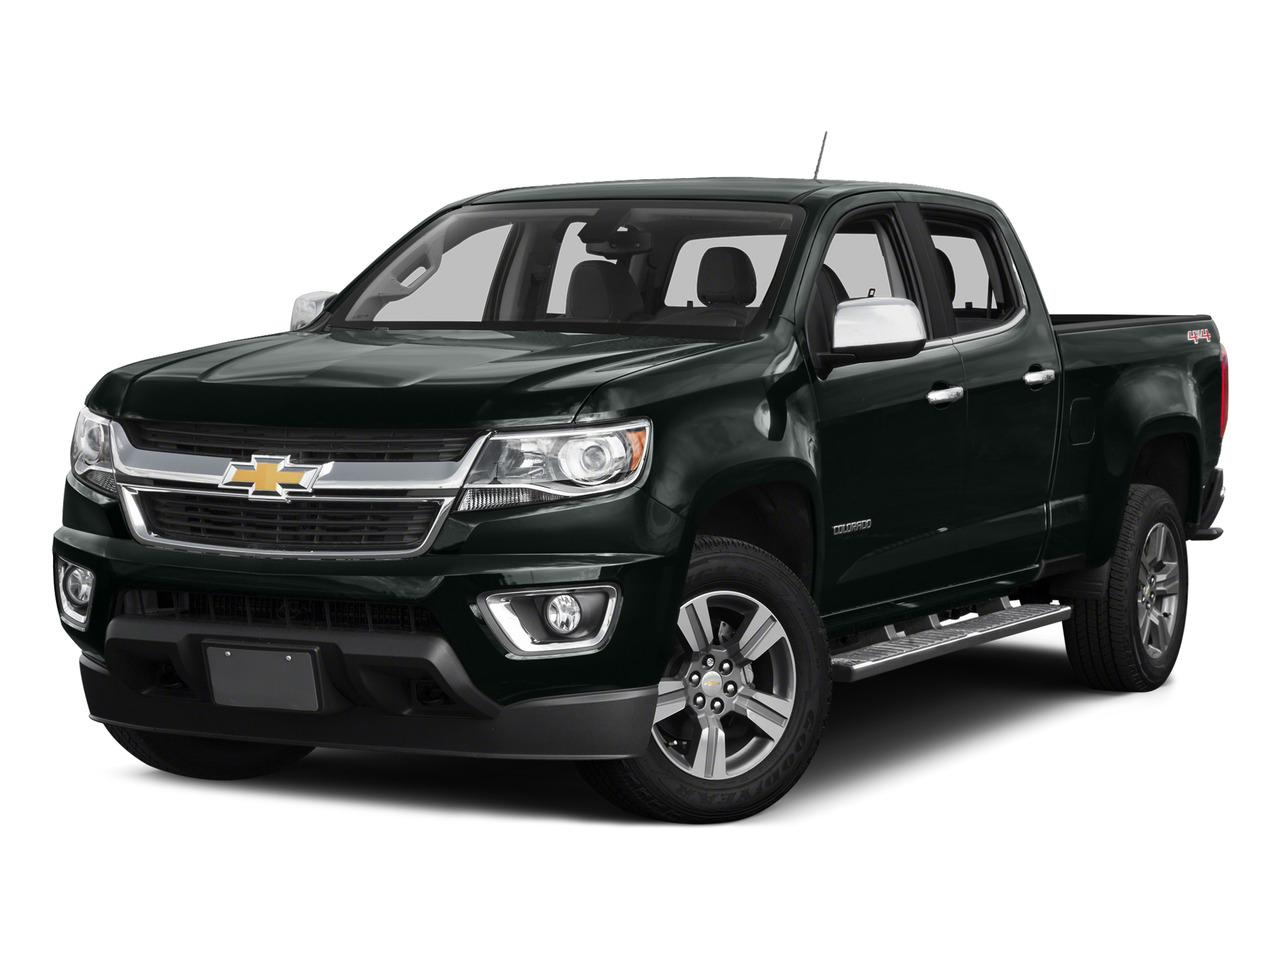 2015 Chevrolet Colorado Vehicle Photo in Concord, NC 28027